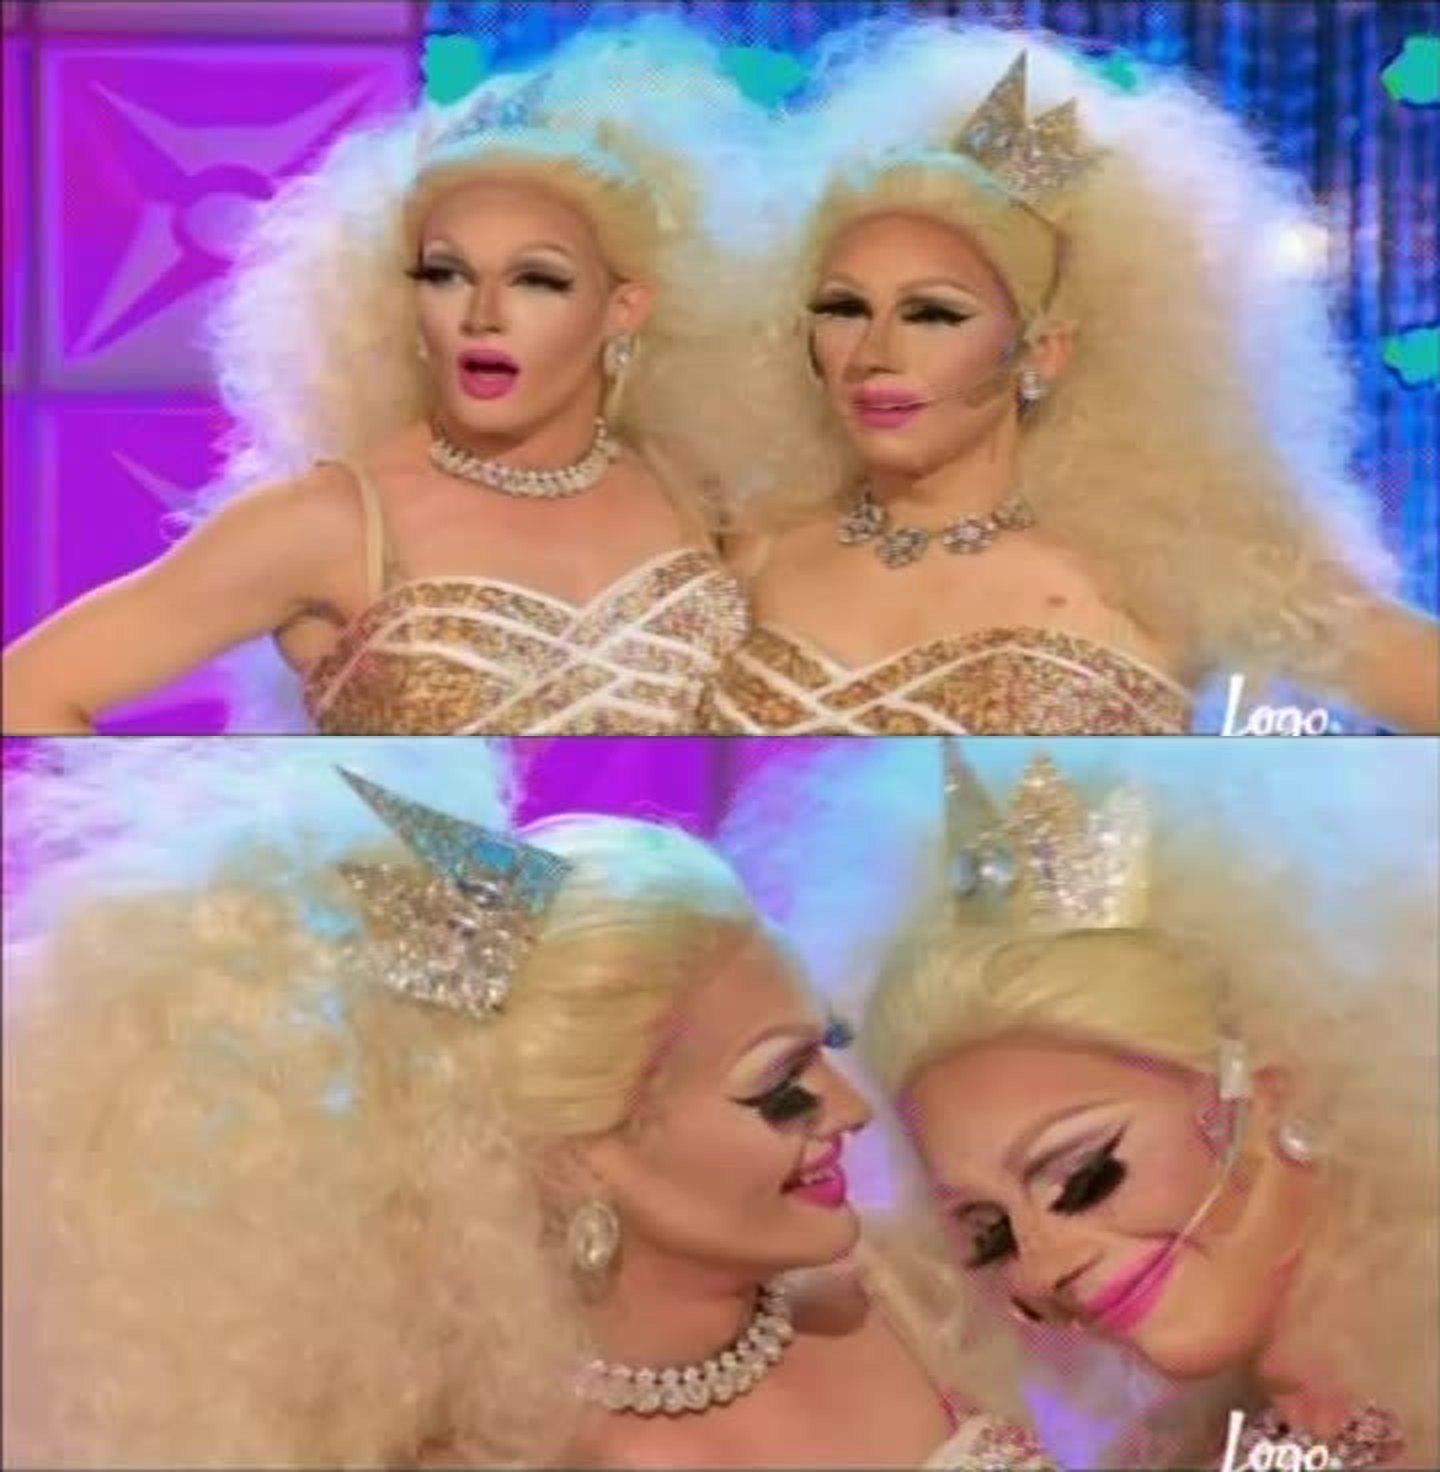 So happy to have Trixie back in the competition!